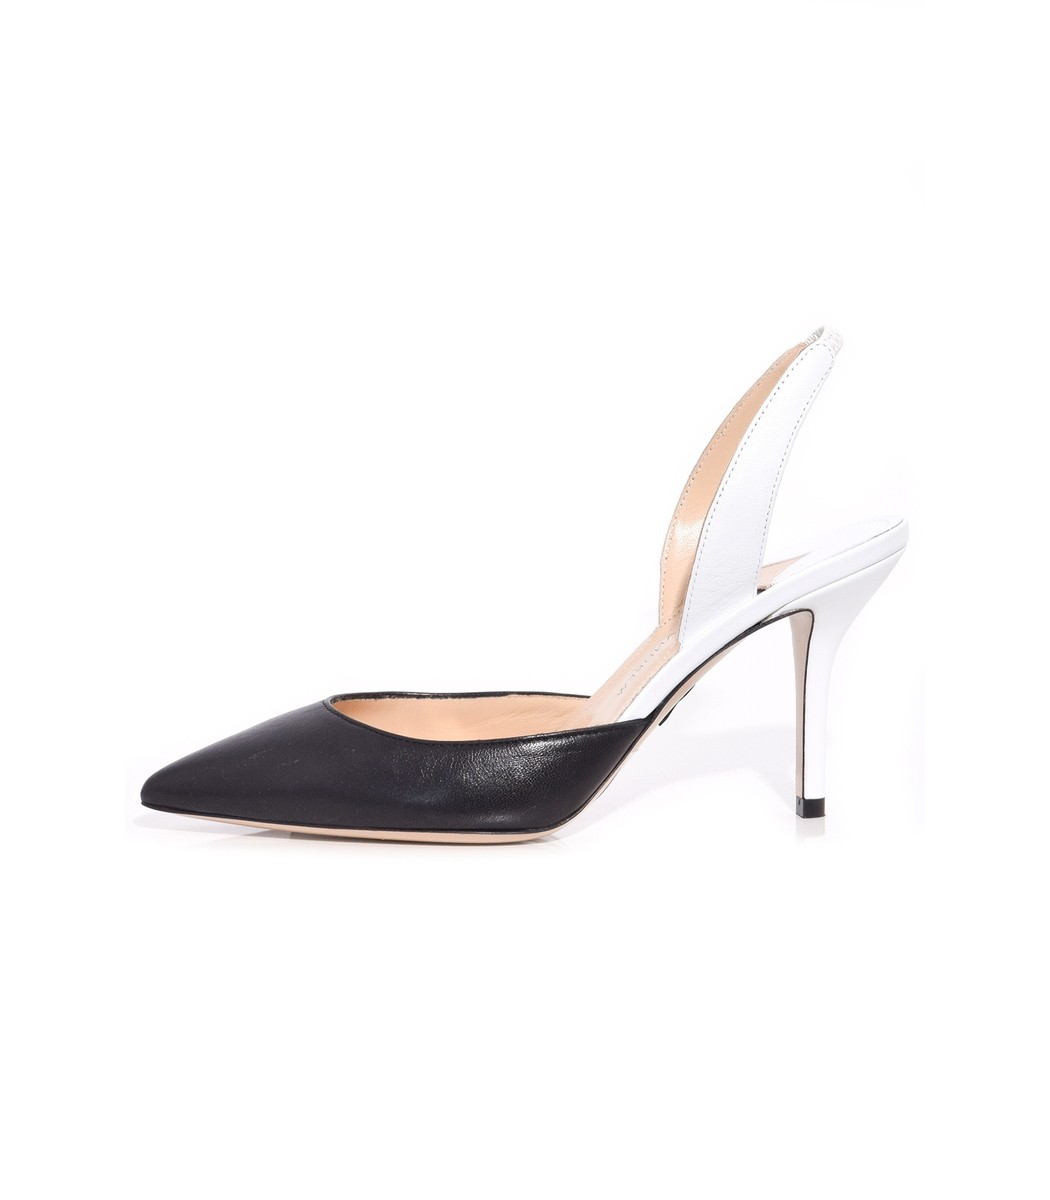 Paul Andrew AW Slingback Pump in Black/White